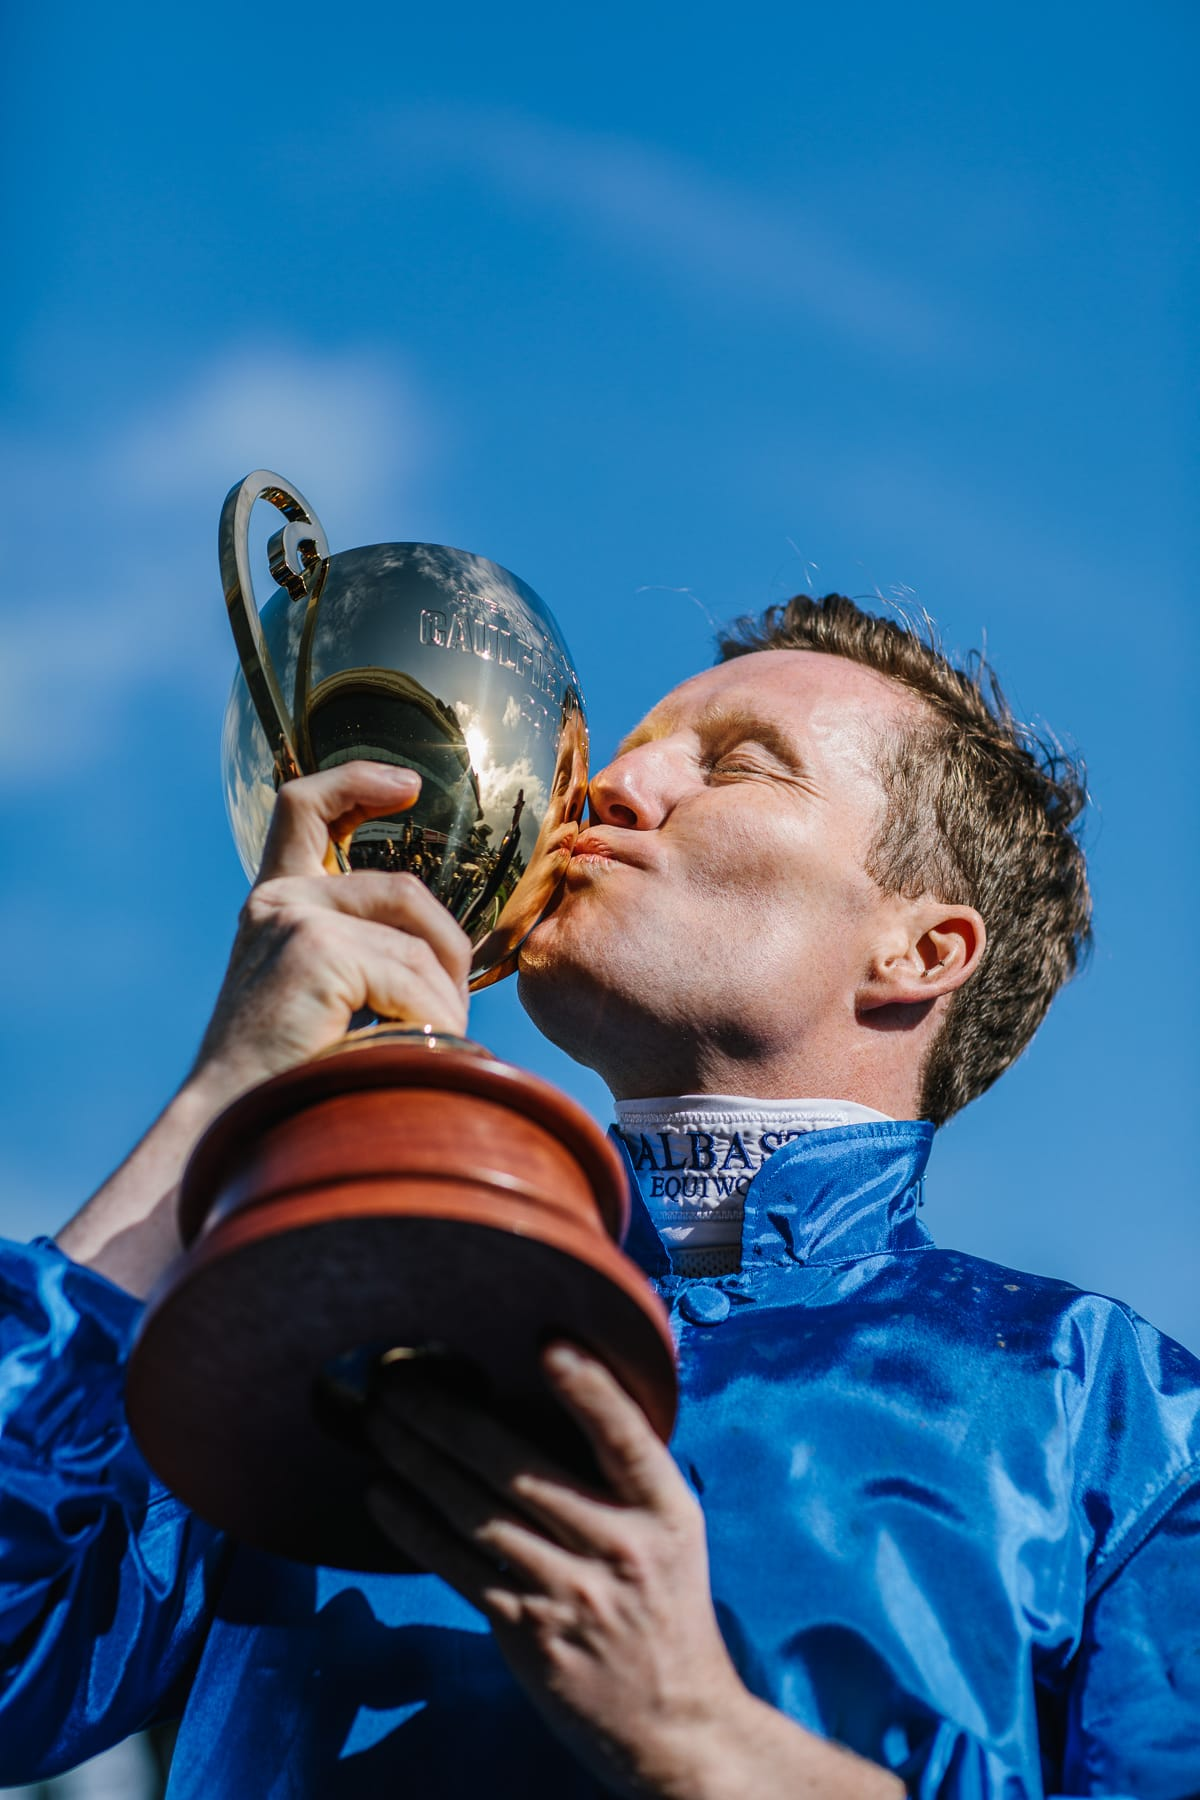 Photo of the winning jockey of the Caulfield Cup - Must have photos